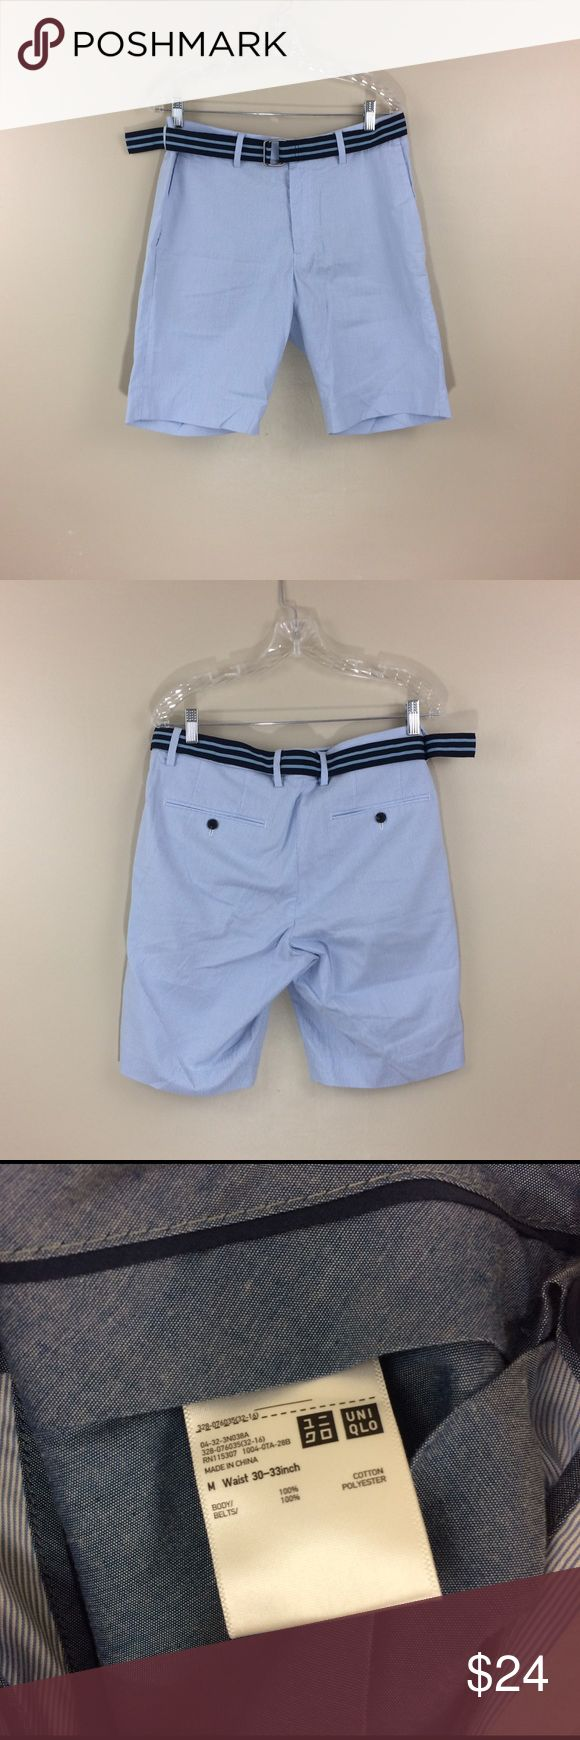 Uniqlo - Baby Blue - Shorts - W30-33 Like New - Washed and Wore Once. Belt included. Uniqlo Shorts Flat Front